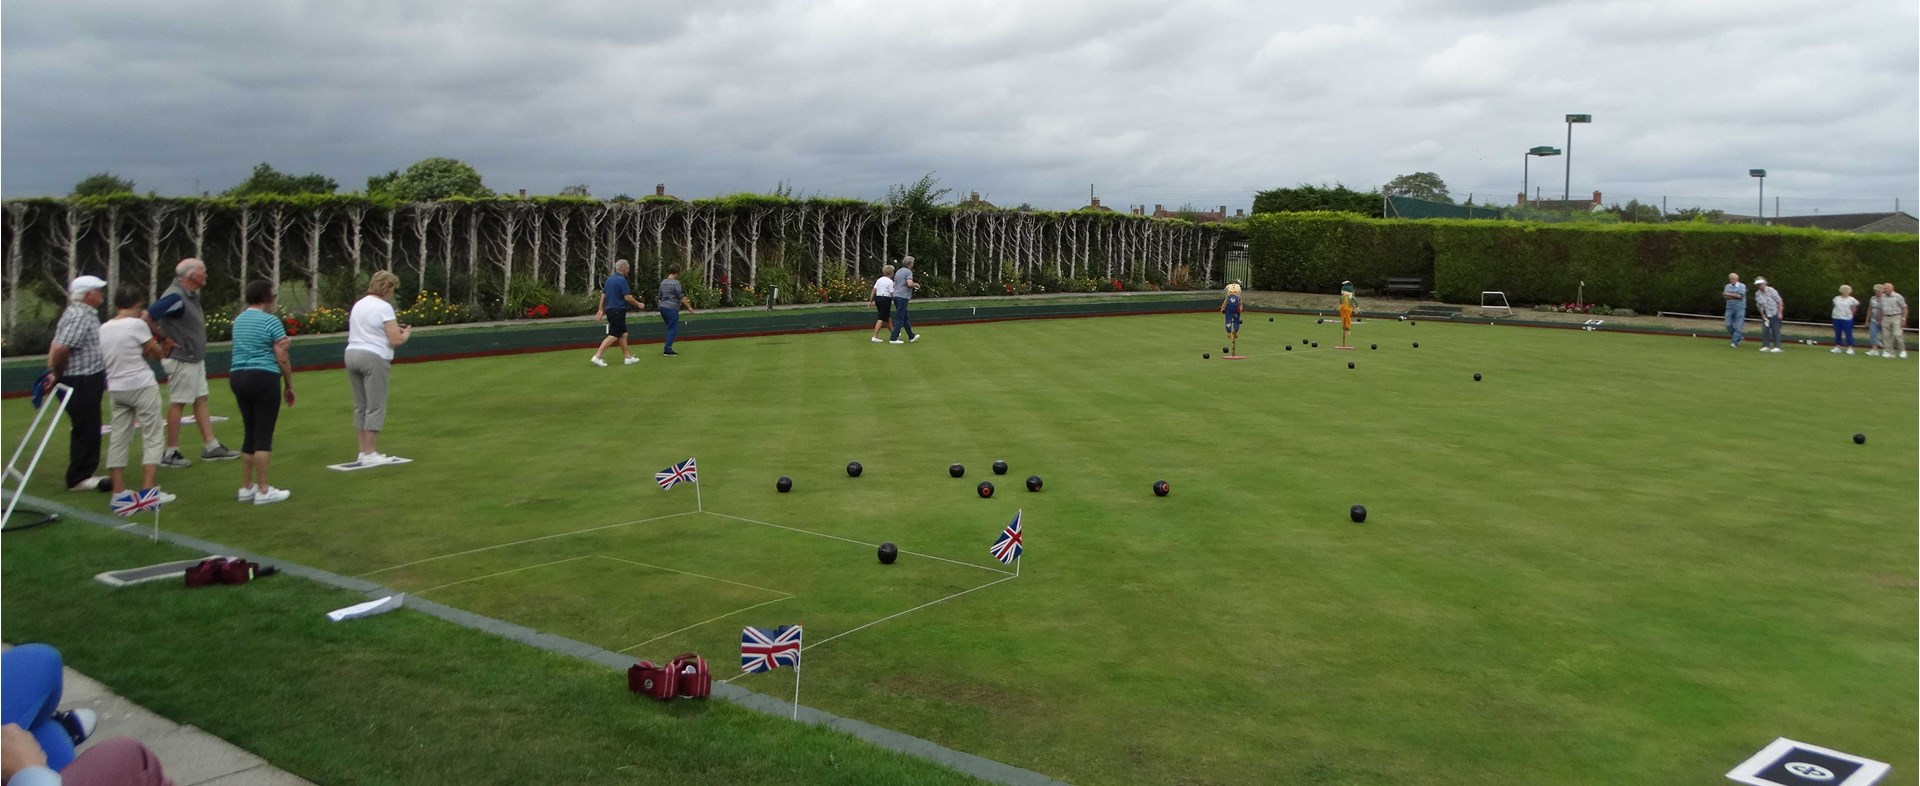 SOMERTON & DISTRICT BOWLS CLUB Social Activity